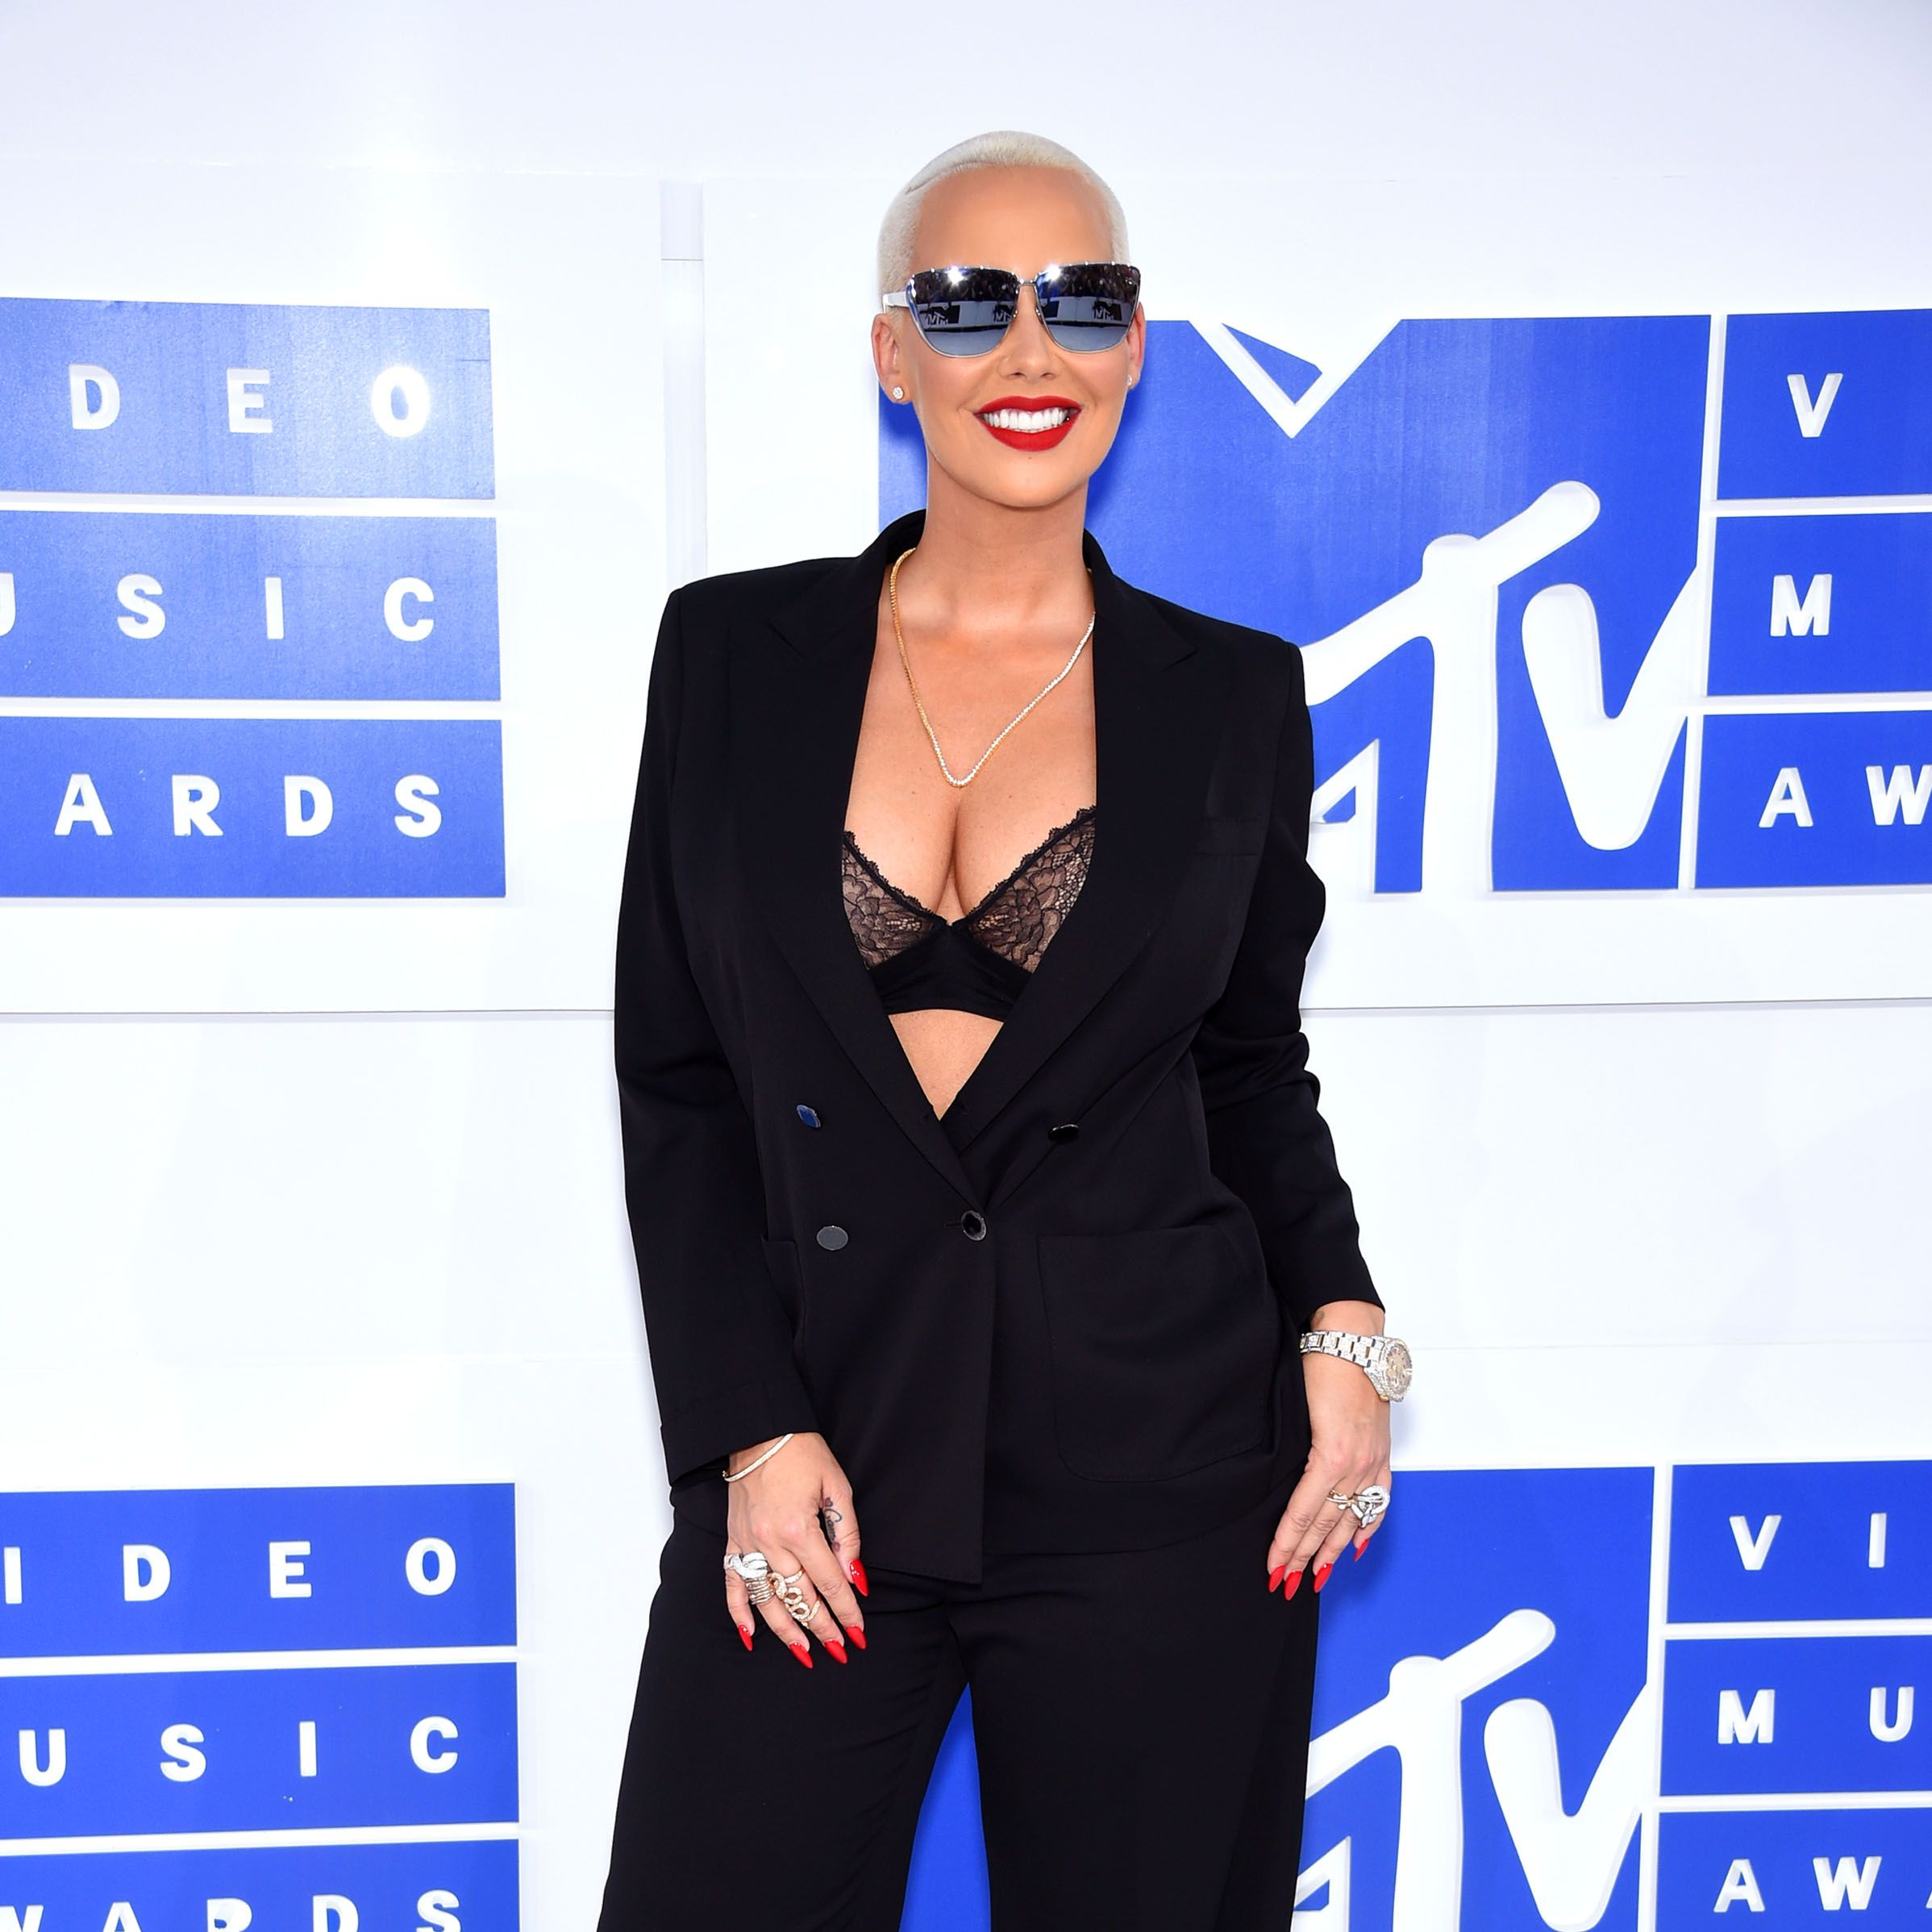 NEW YORK, NY - AUGUST 28:  Model Amber Rose attends the 2016 MTV Video Music Awards at Madison Square Garden on August 28, 2016 in New York City.  (Photo by Dimitrios Kambouris/WireImage)